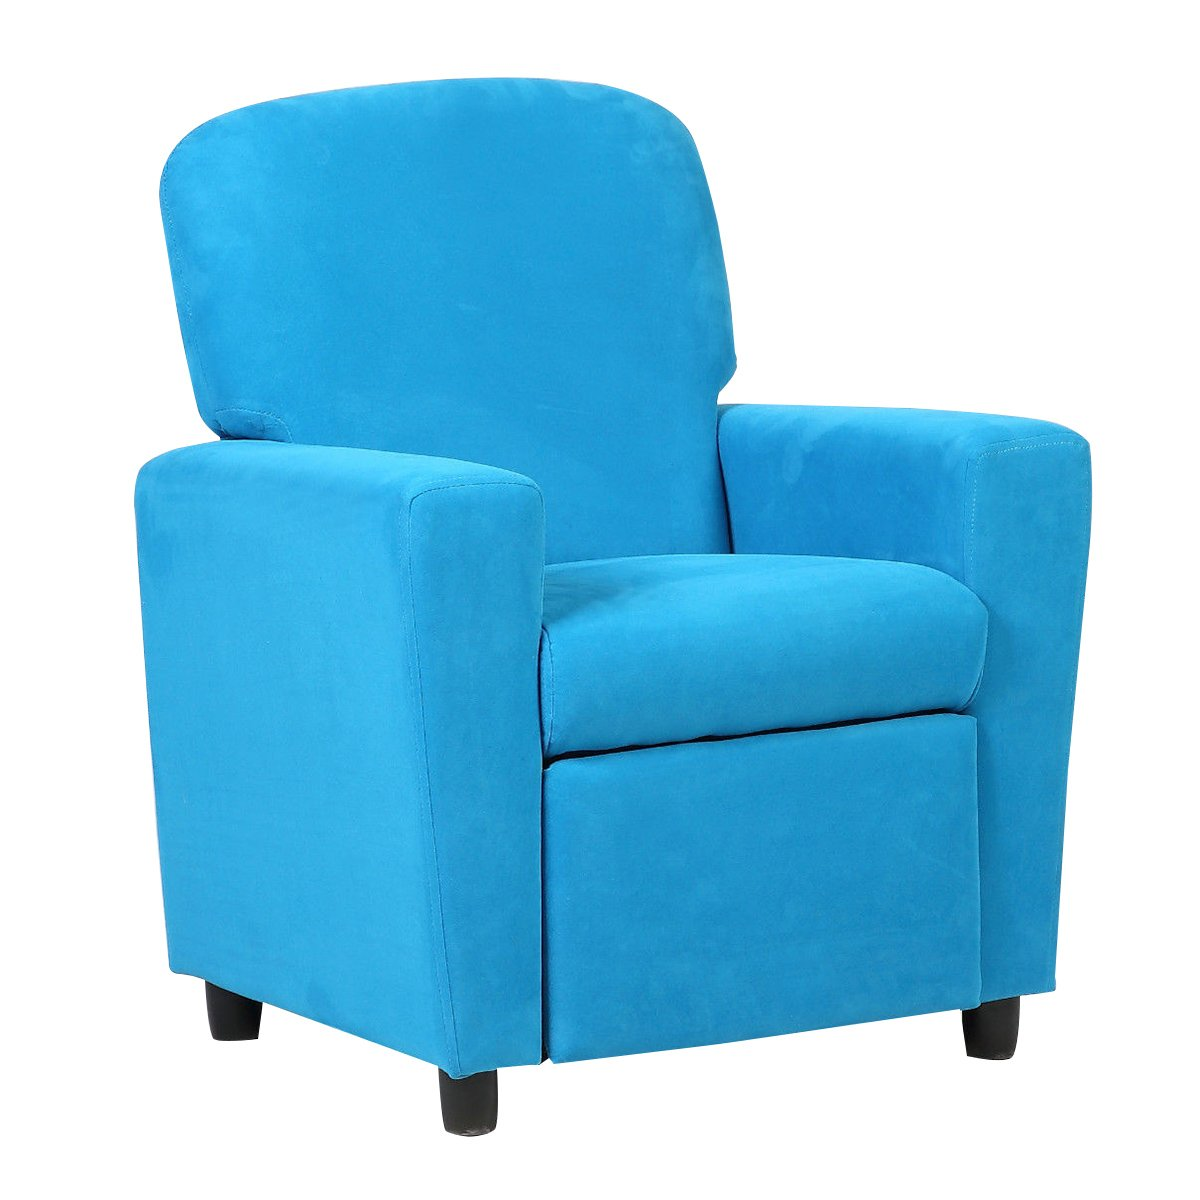 Costzon Kids Recliner Sofa Chair Children Reclining Seat Couch Room Furniture (Blue)